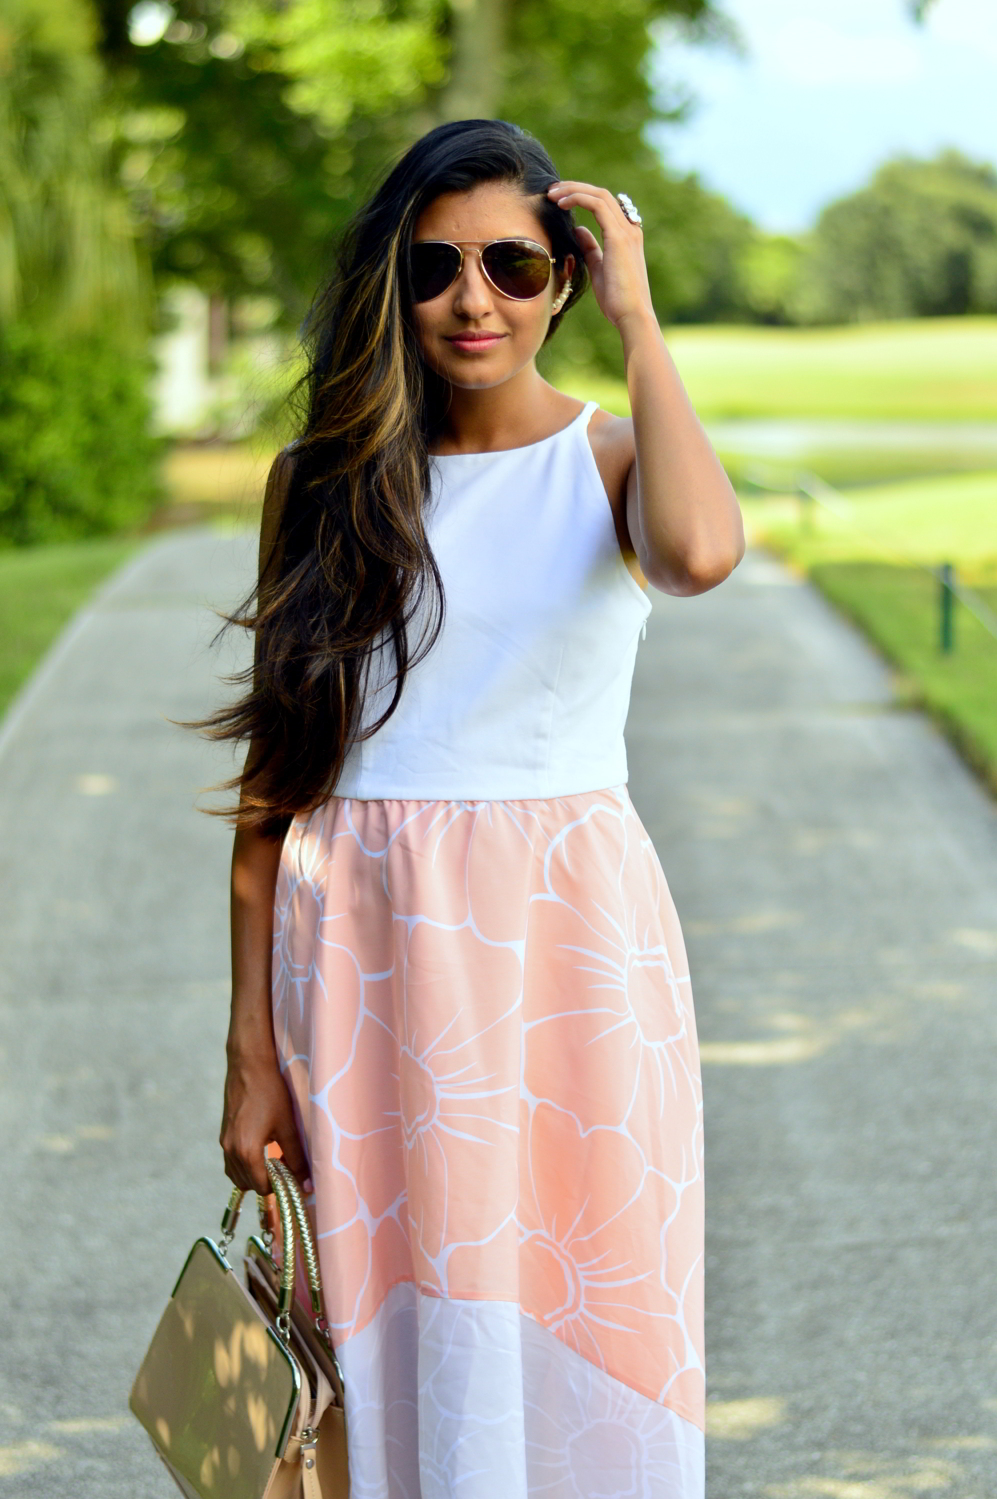 floral-pastel-high-low-dress-summer-blogger-outfit 2